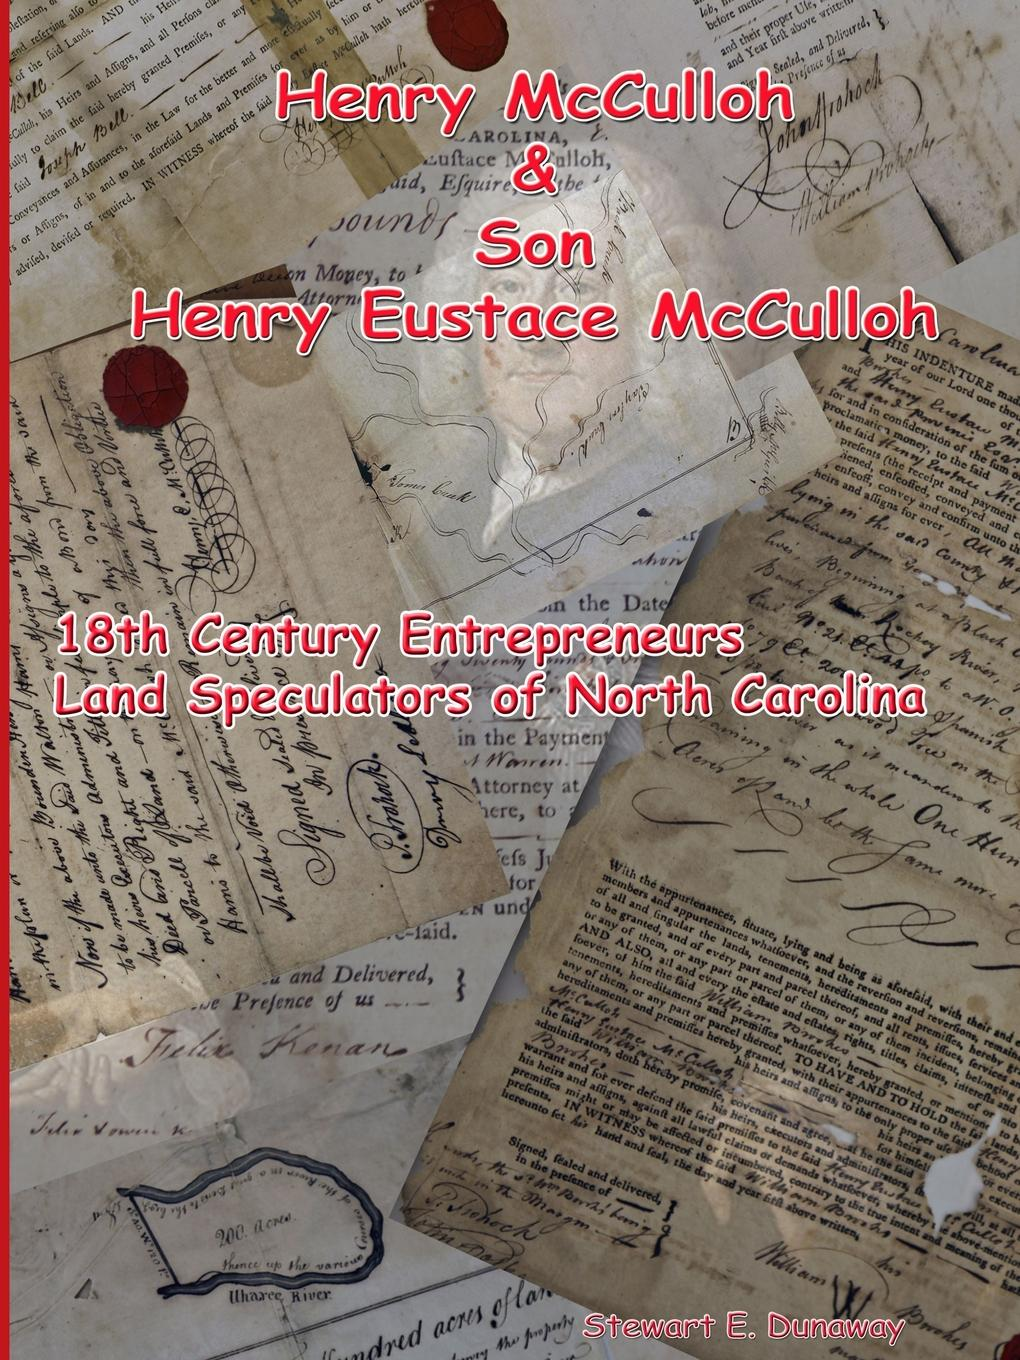 Henry McCulloh and Son Henry Eustace McCulloh